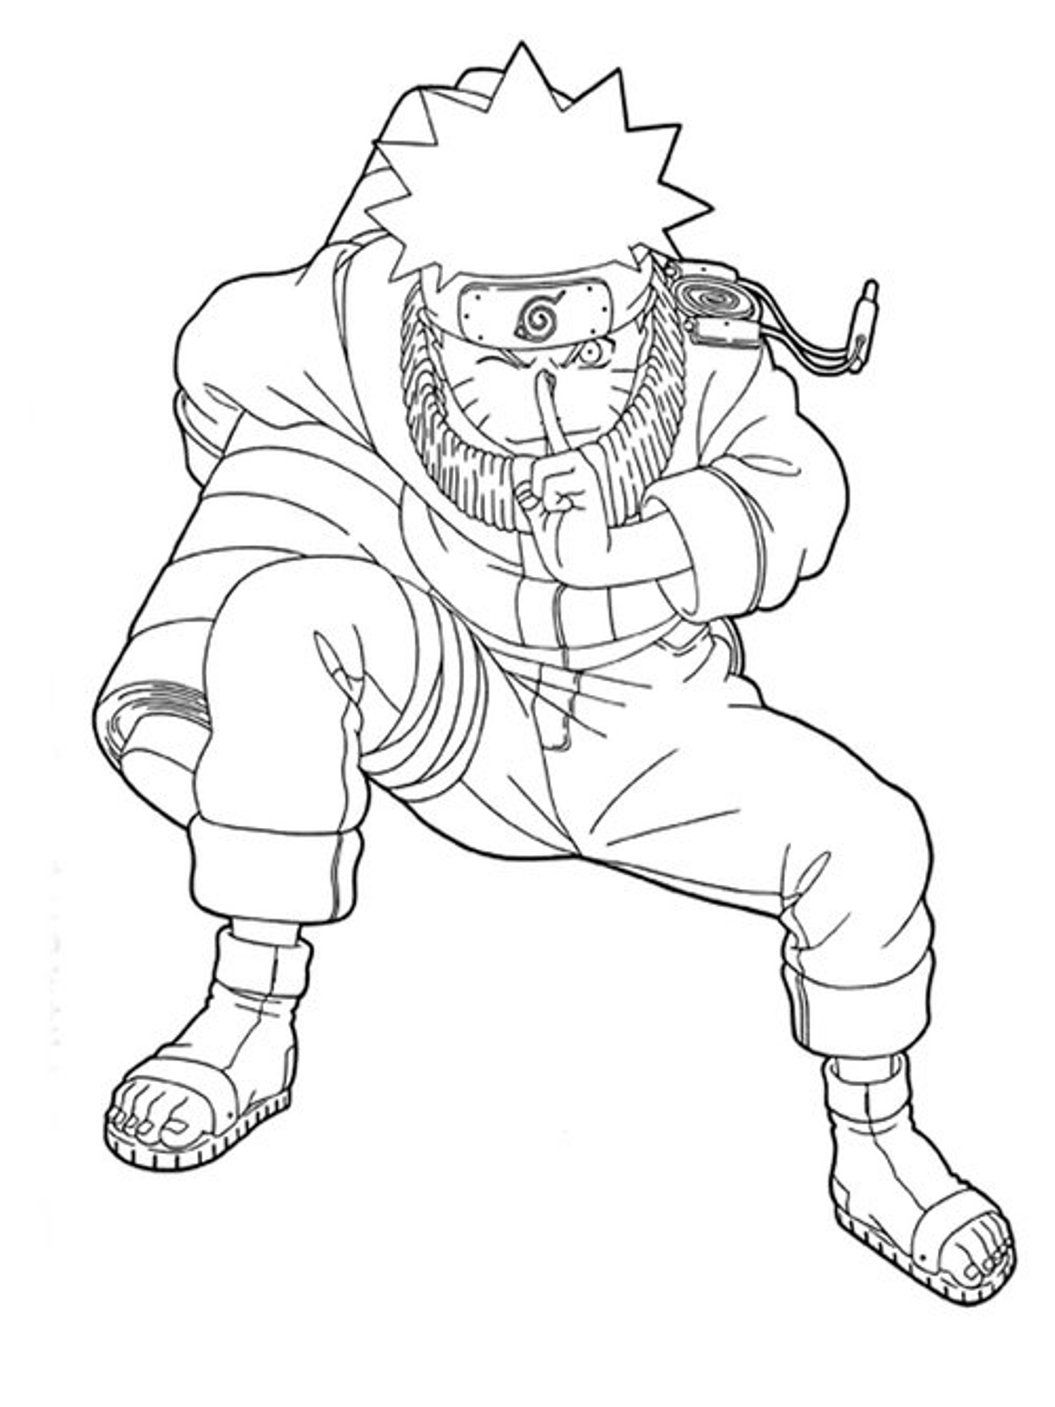 Naruto holds rolls coloring pages for kids g6n